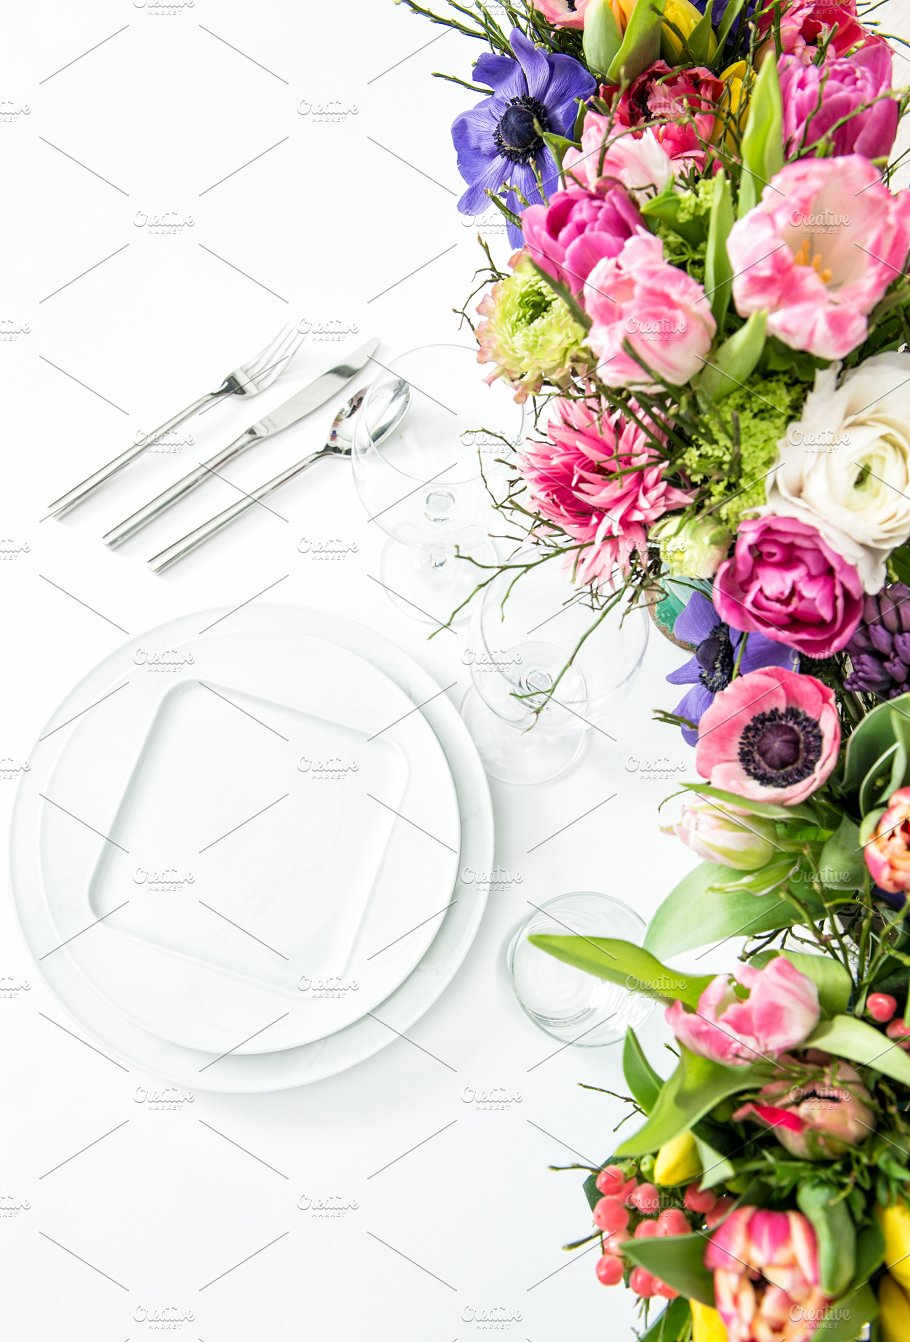 Table Decoration Spring Flowers Food Images Creative Market